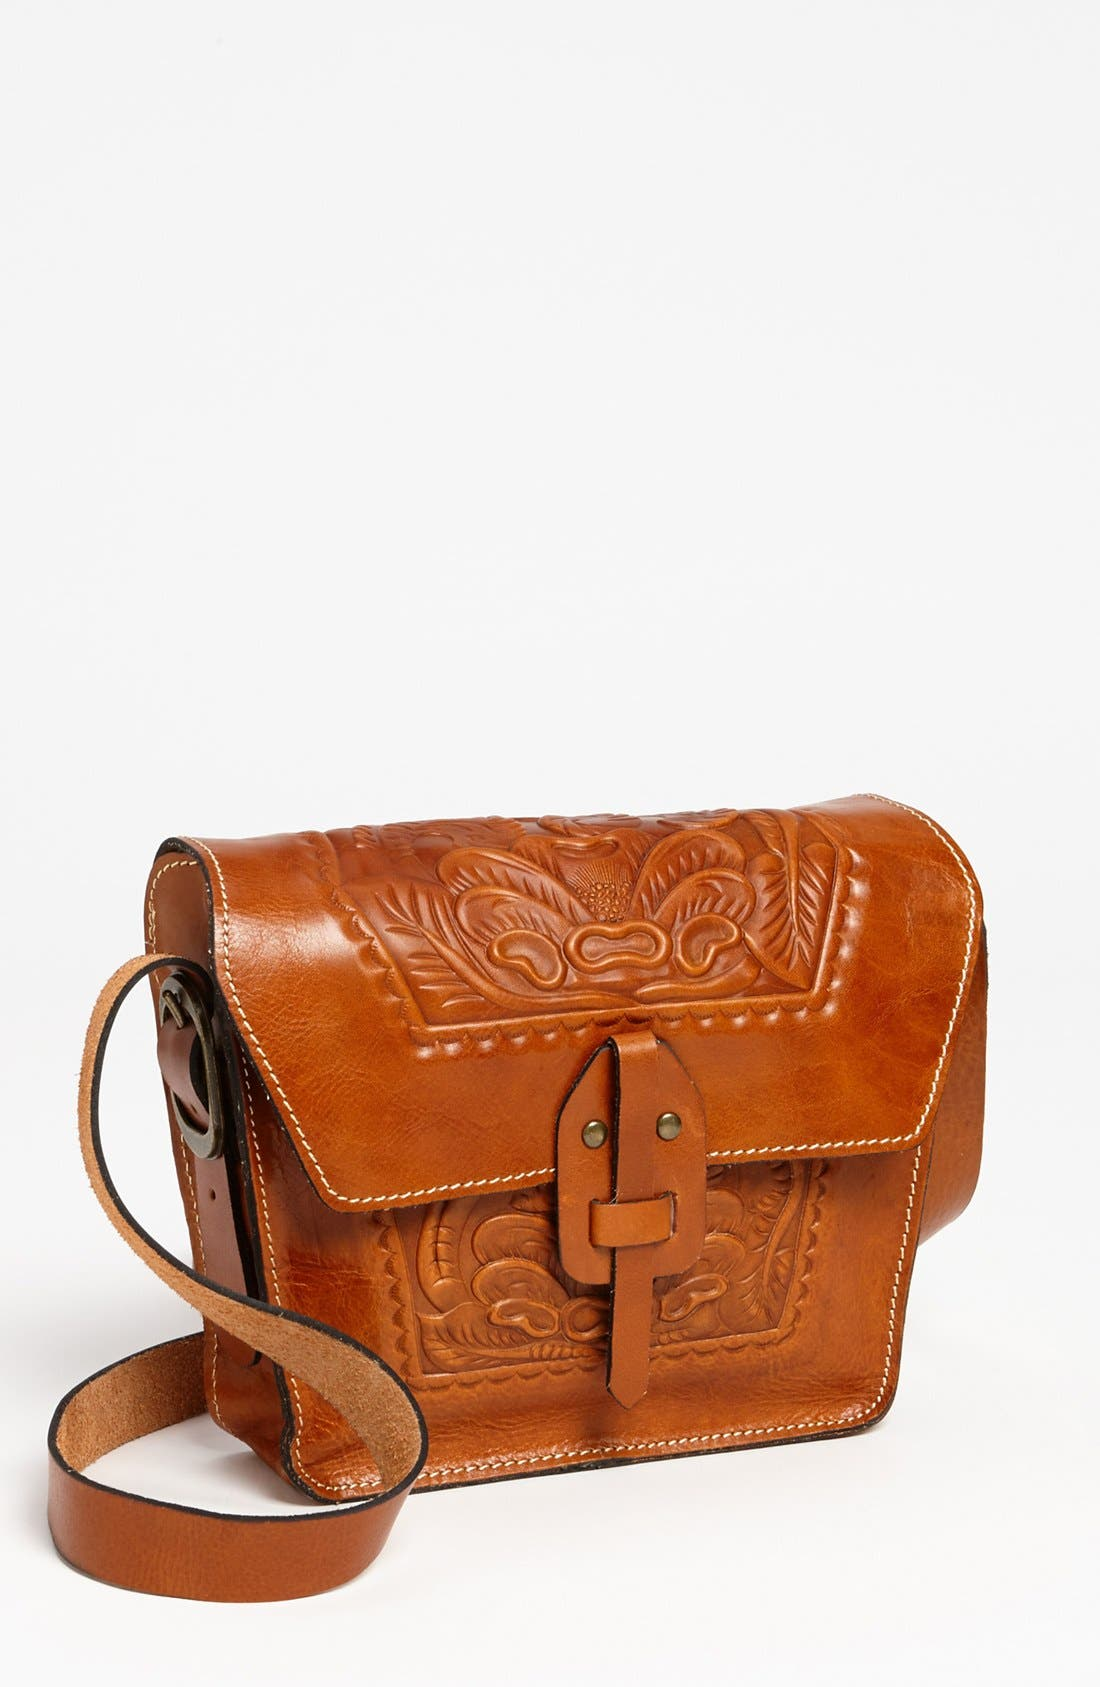 Alternate Image 1 Selected - Patricia Nash 'Marciano' Leather Crossbody Bag